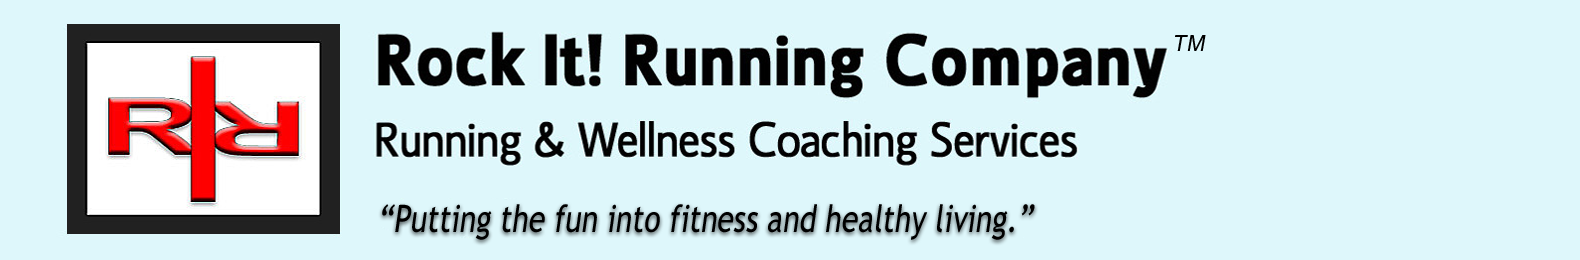 Rock It! Running Company™: Running & Wellness Coaching Services